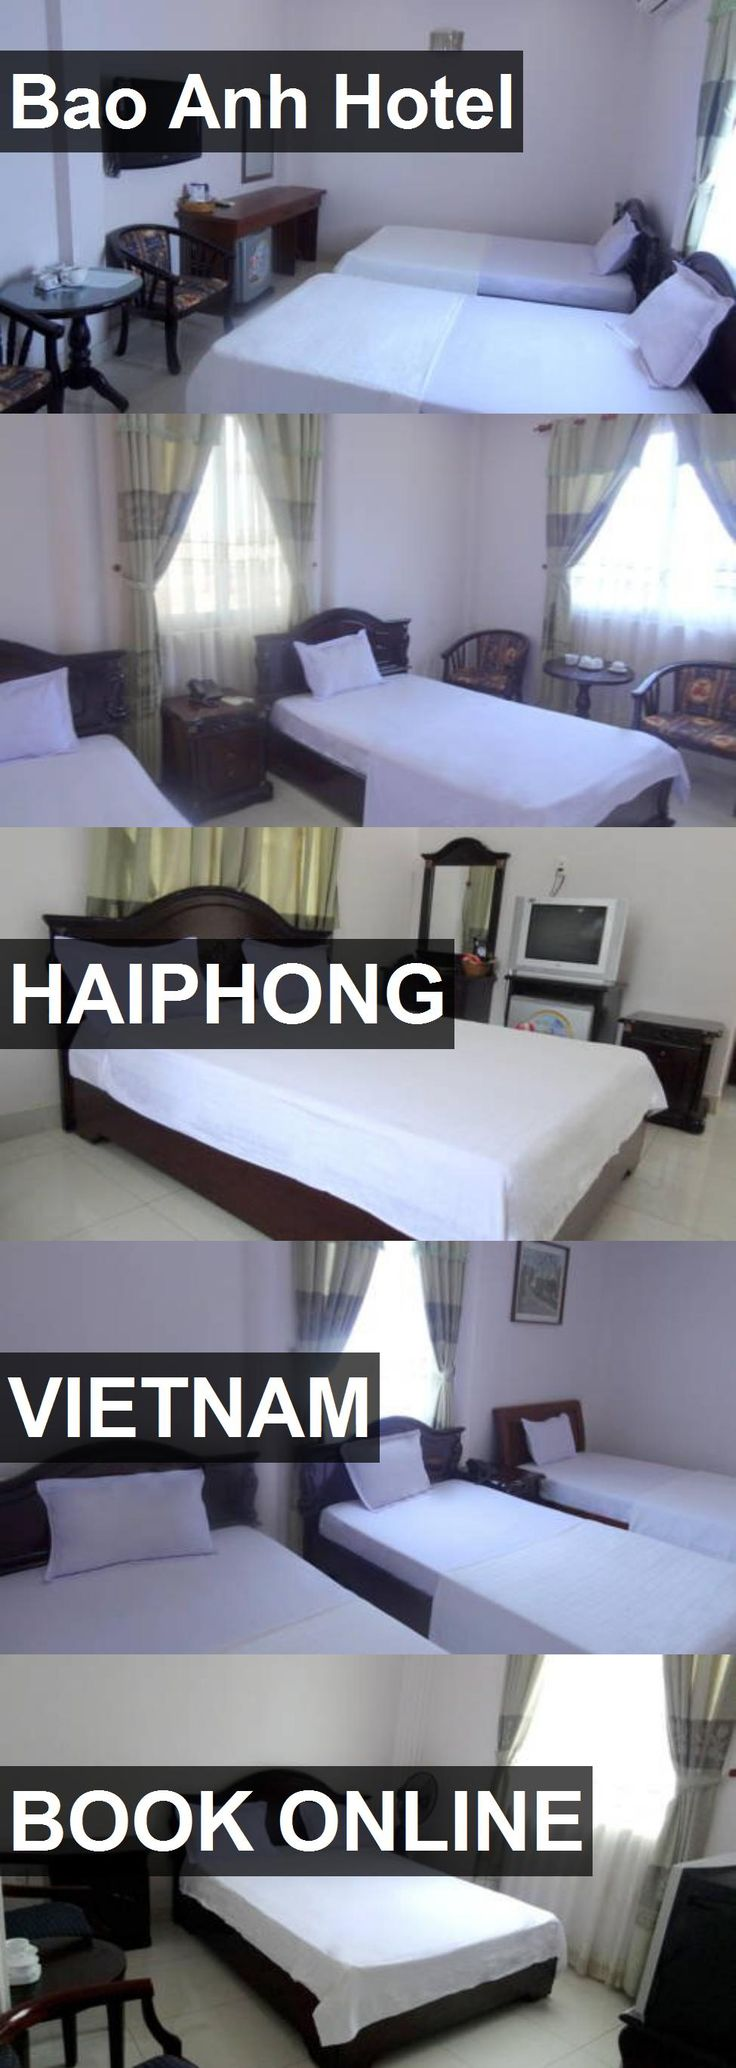 Hotel Bao Anh Hotel in Haiphong, Vietnam. For more information, photos, reviews and best prices please follow the link. #Vietnam #Haiphong #BaoAnhHotel #hotel #travel #vacation